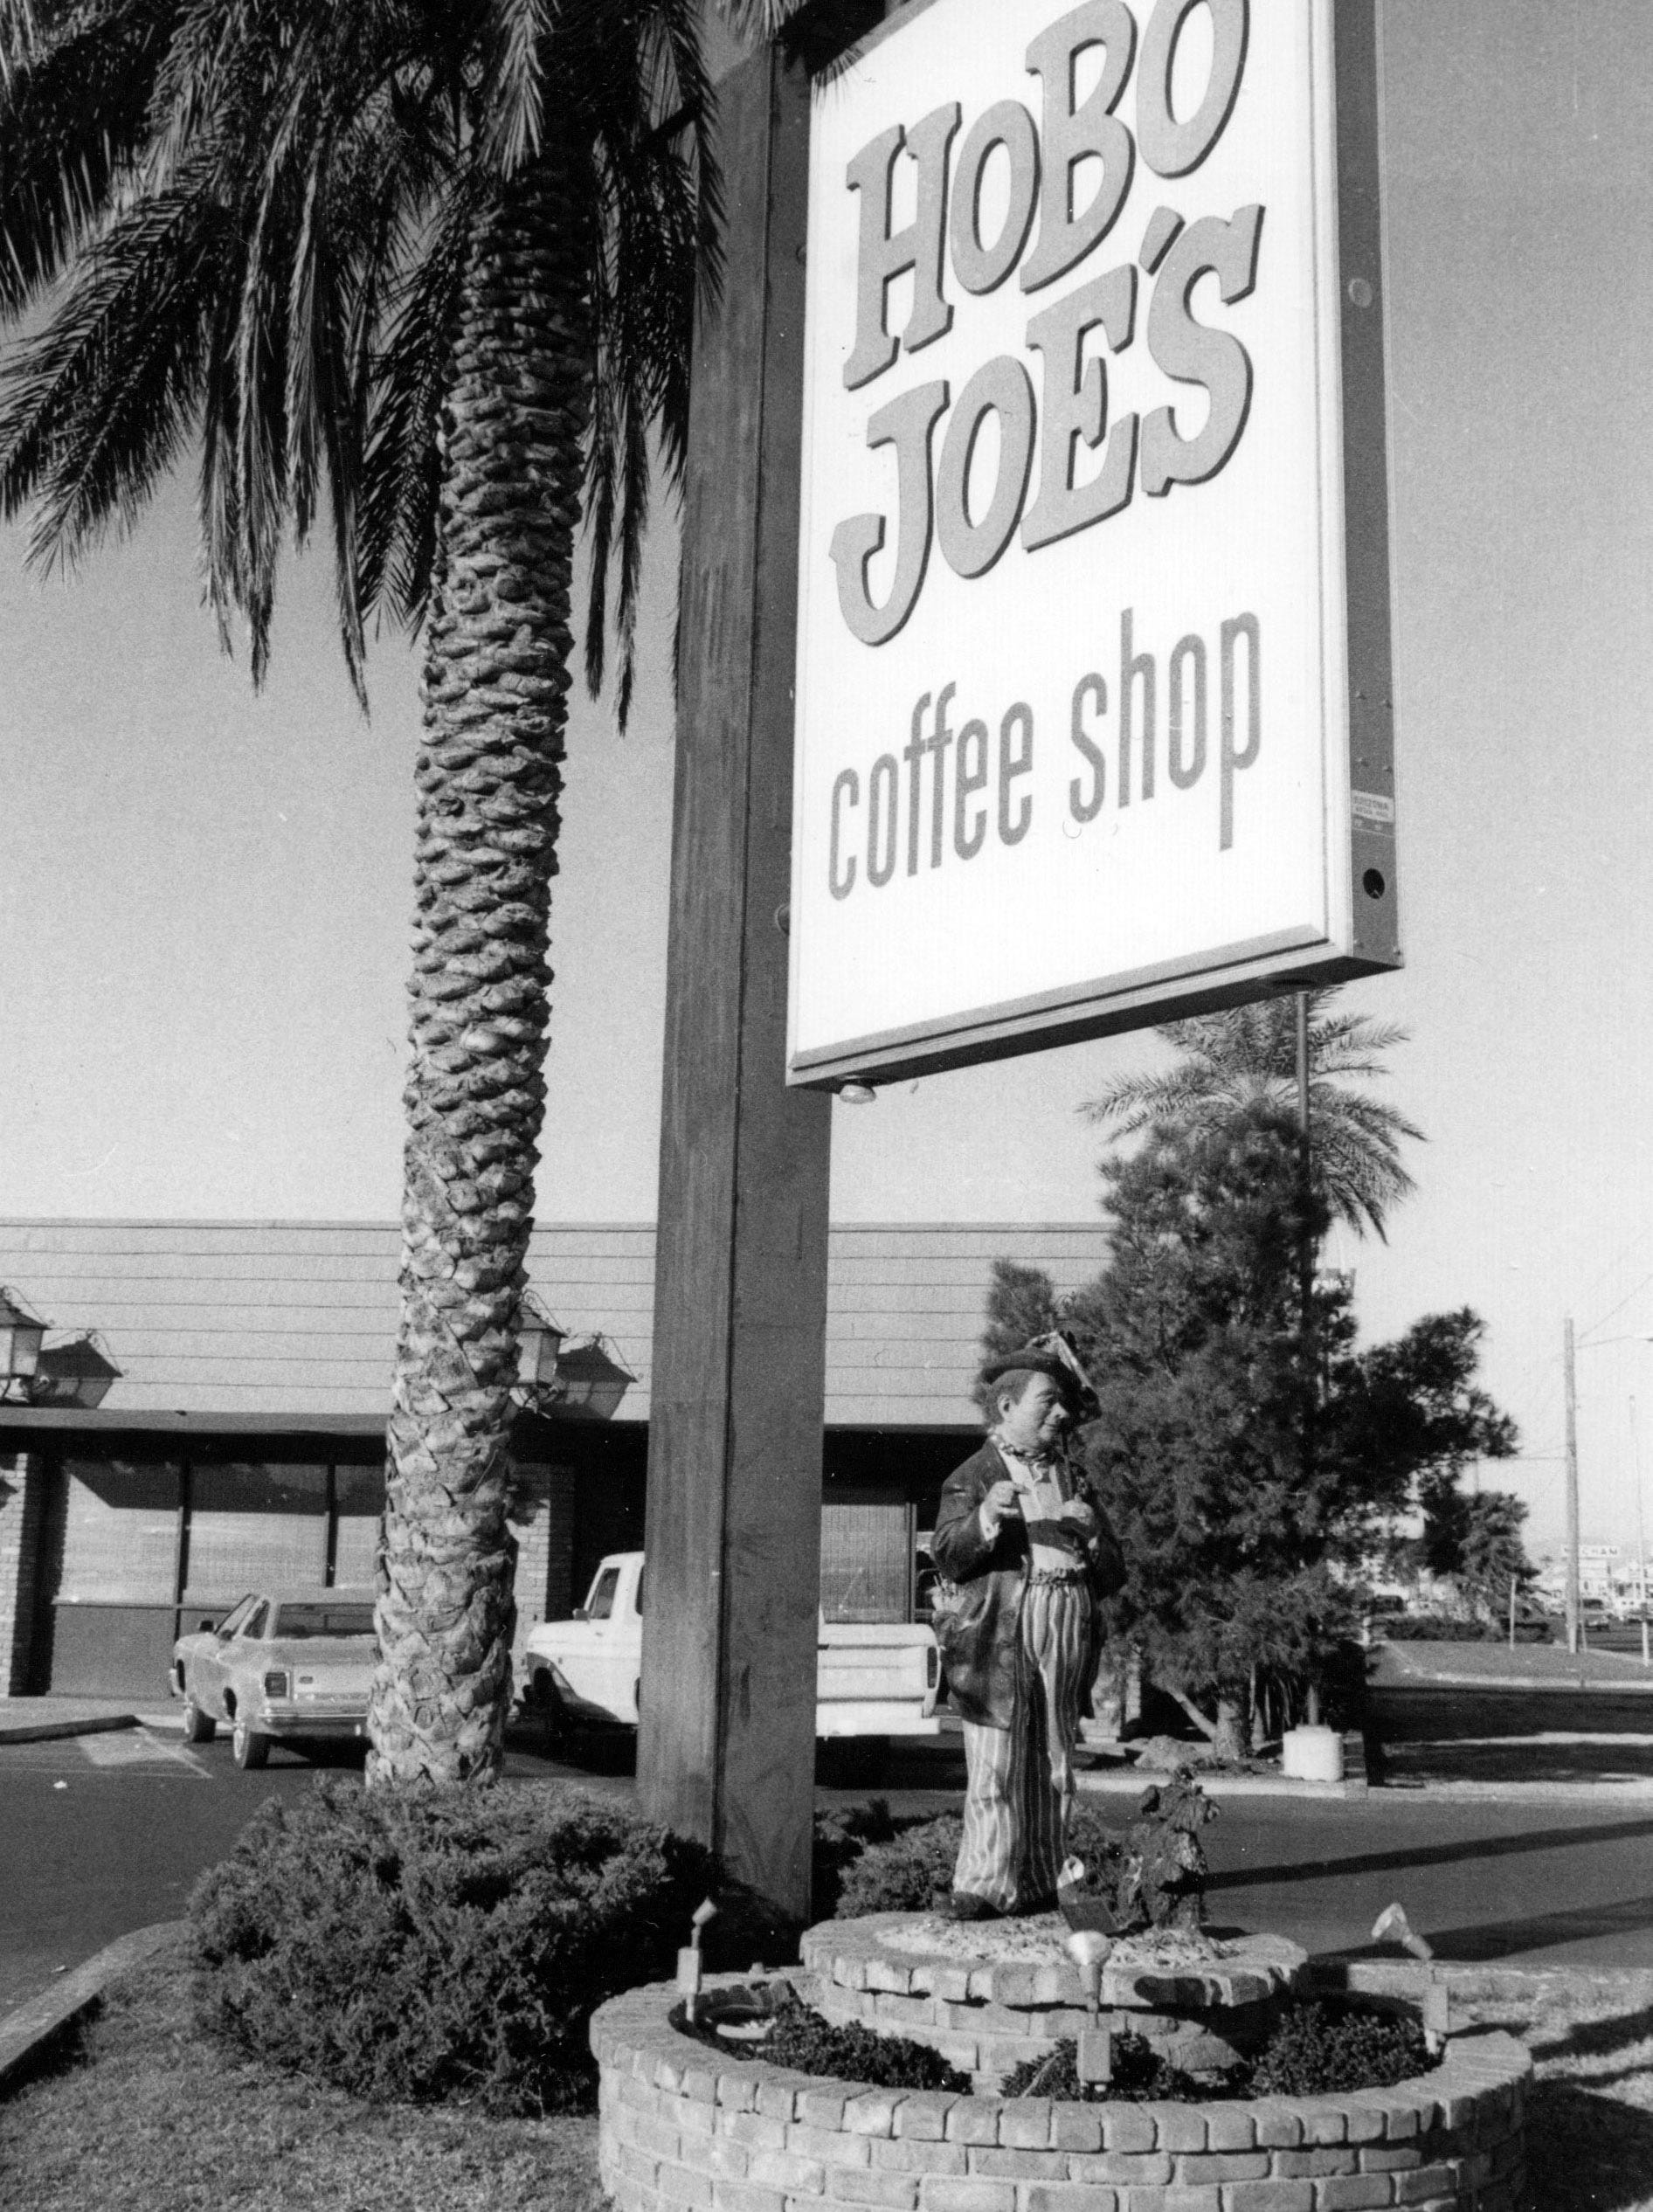 As the Hobo Joe's coffee shops grew across Phoenix, its founder, Herb Applegate, drew the attention of Arizona Republic reporter Don Bolles. The shops were known for the statue of Hobo Joe, a character designed specifically for Applegate.